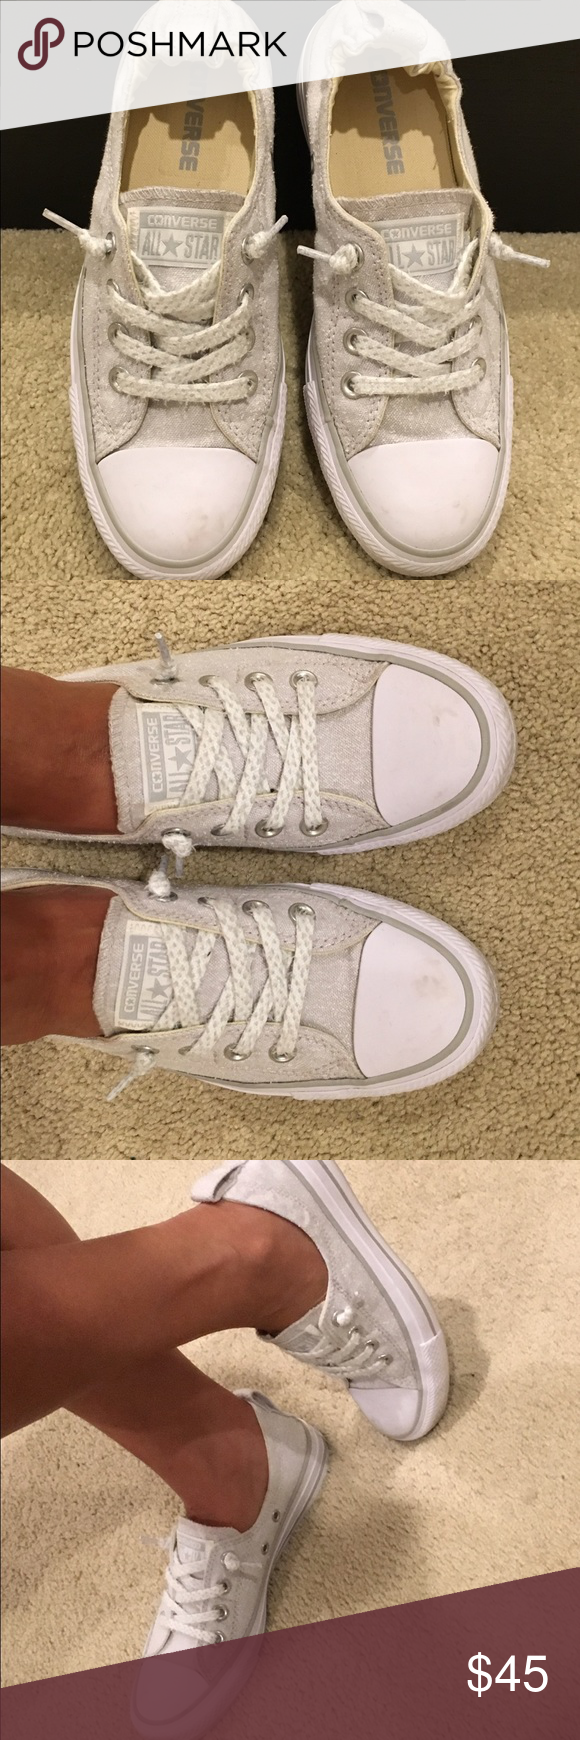 b747055965f168 Converse Women 6.5 Heather gray and white slip-on Converse. No-tie laces  and perfect fit heel. Super cute! Used exactly once but have to sell  because I m ...